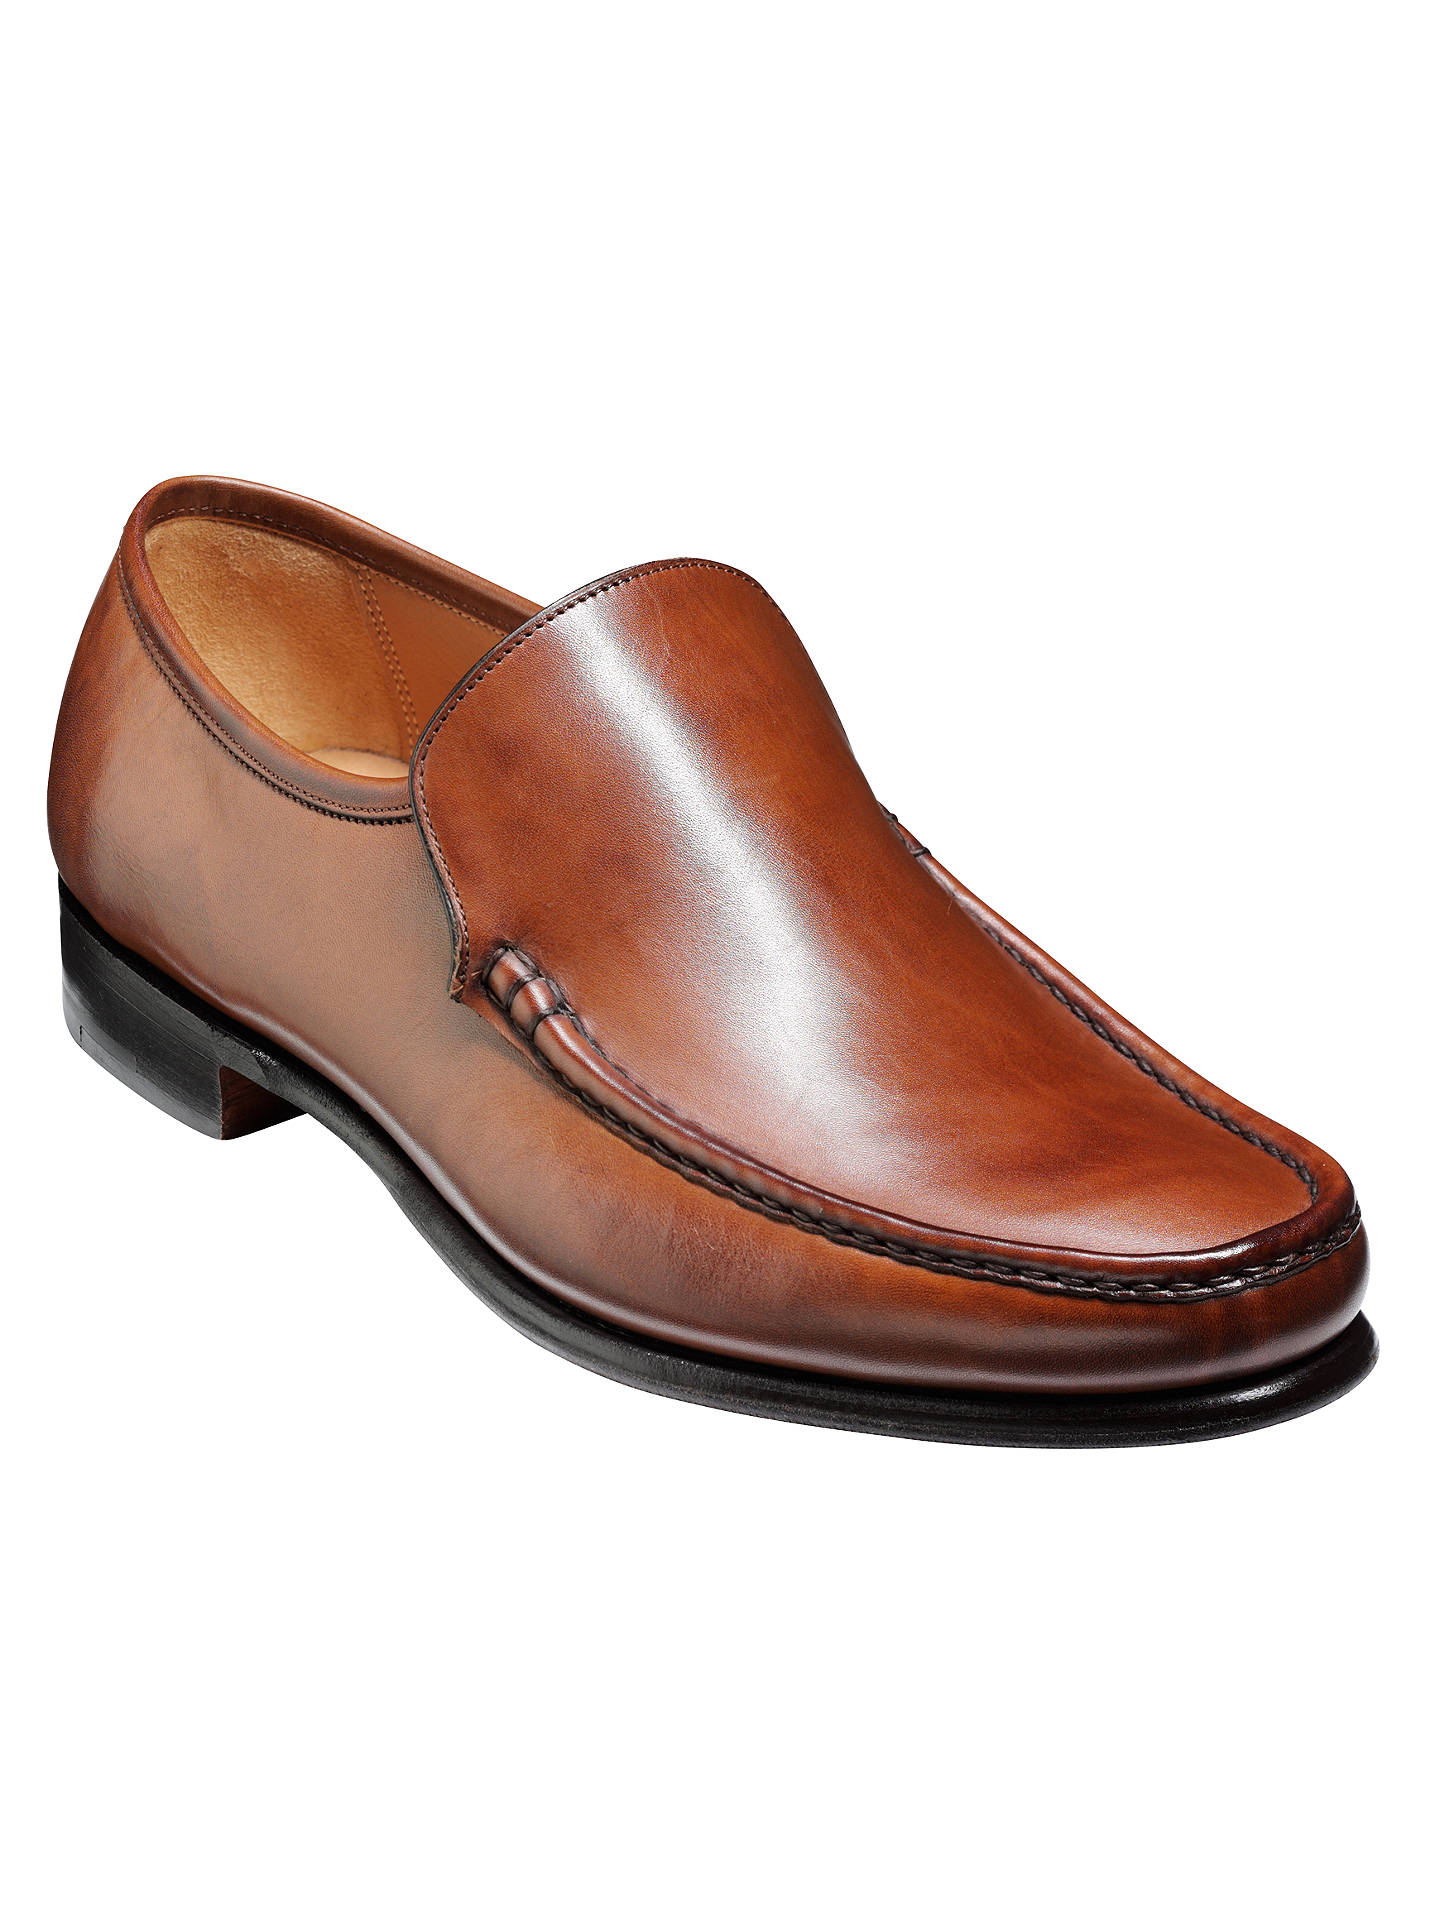 185d4698b2ad6d Leather Shoes Brown at amp  Lewis Partners Torquay Moccasin Barker John  A1fvqv